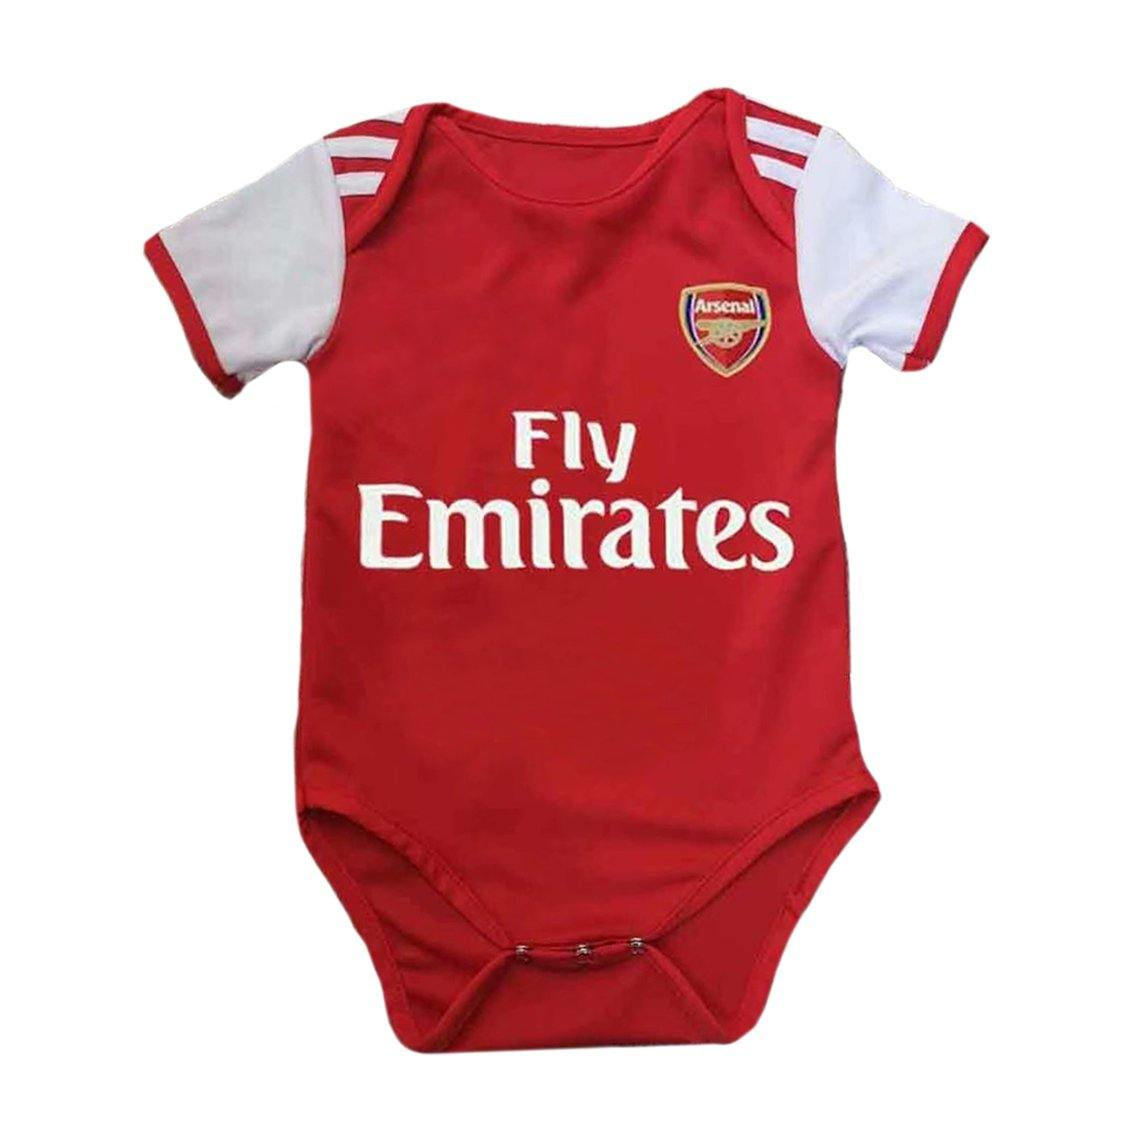 Body Arsenal Bebe Foot 2020 Premier League freeshipping - Foot Online